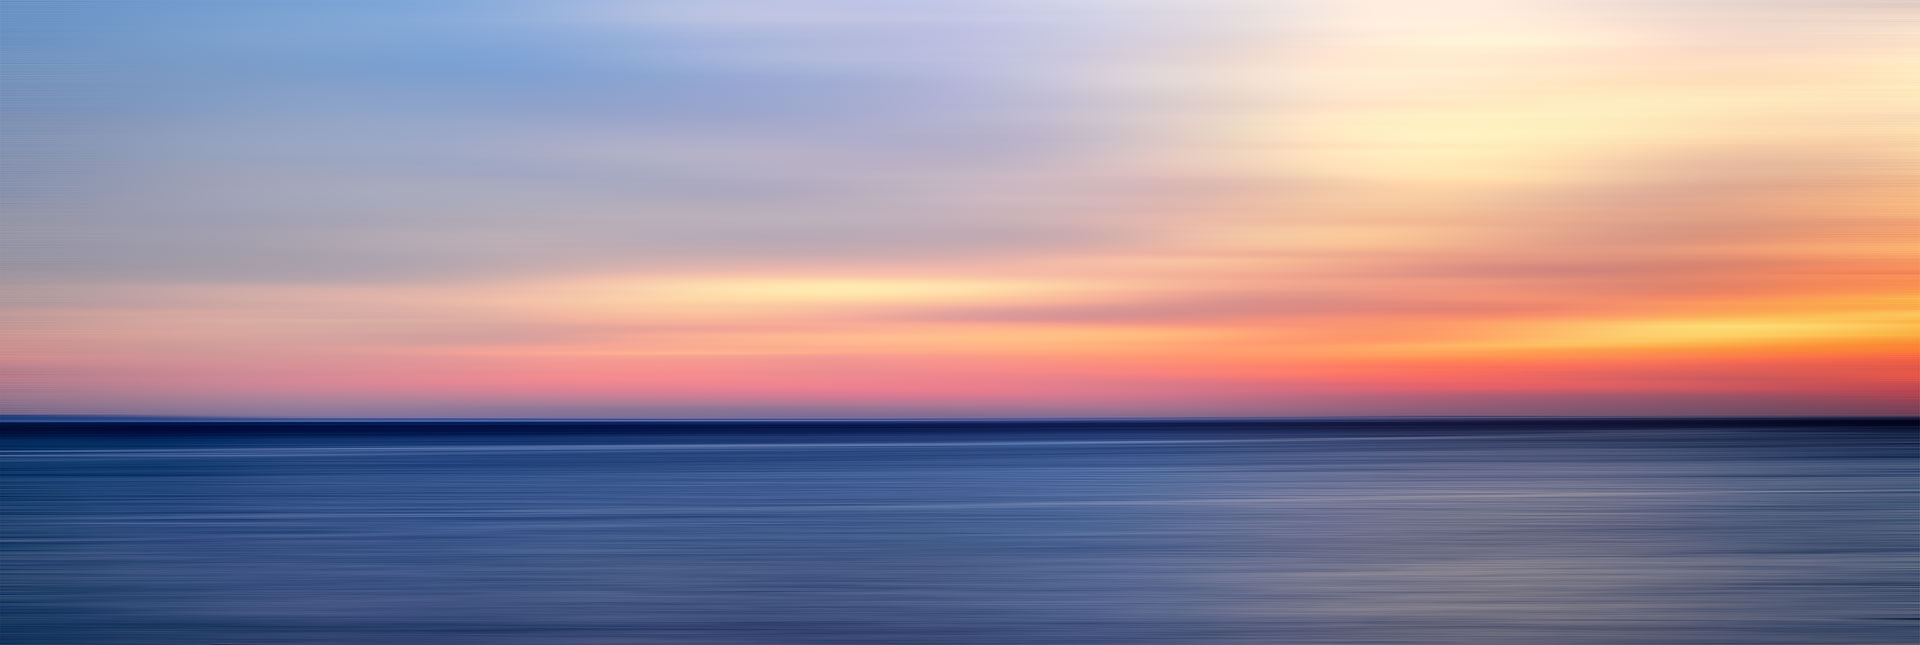 Panoramic landscape and seascape photography. Framed large format prints available at Andrew Prokos Gallery.